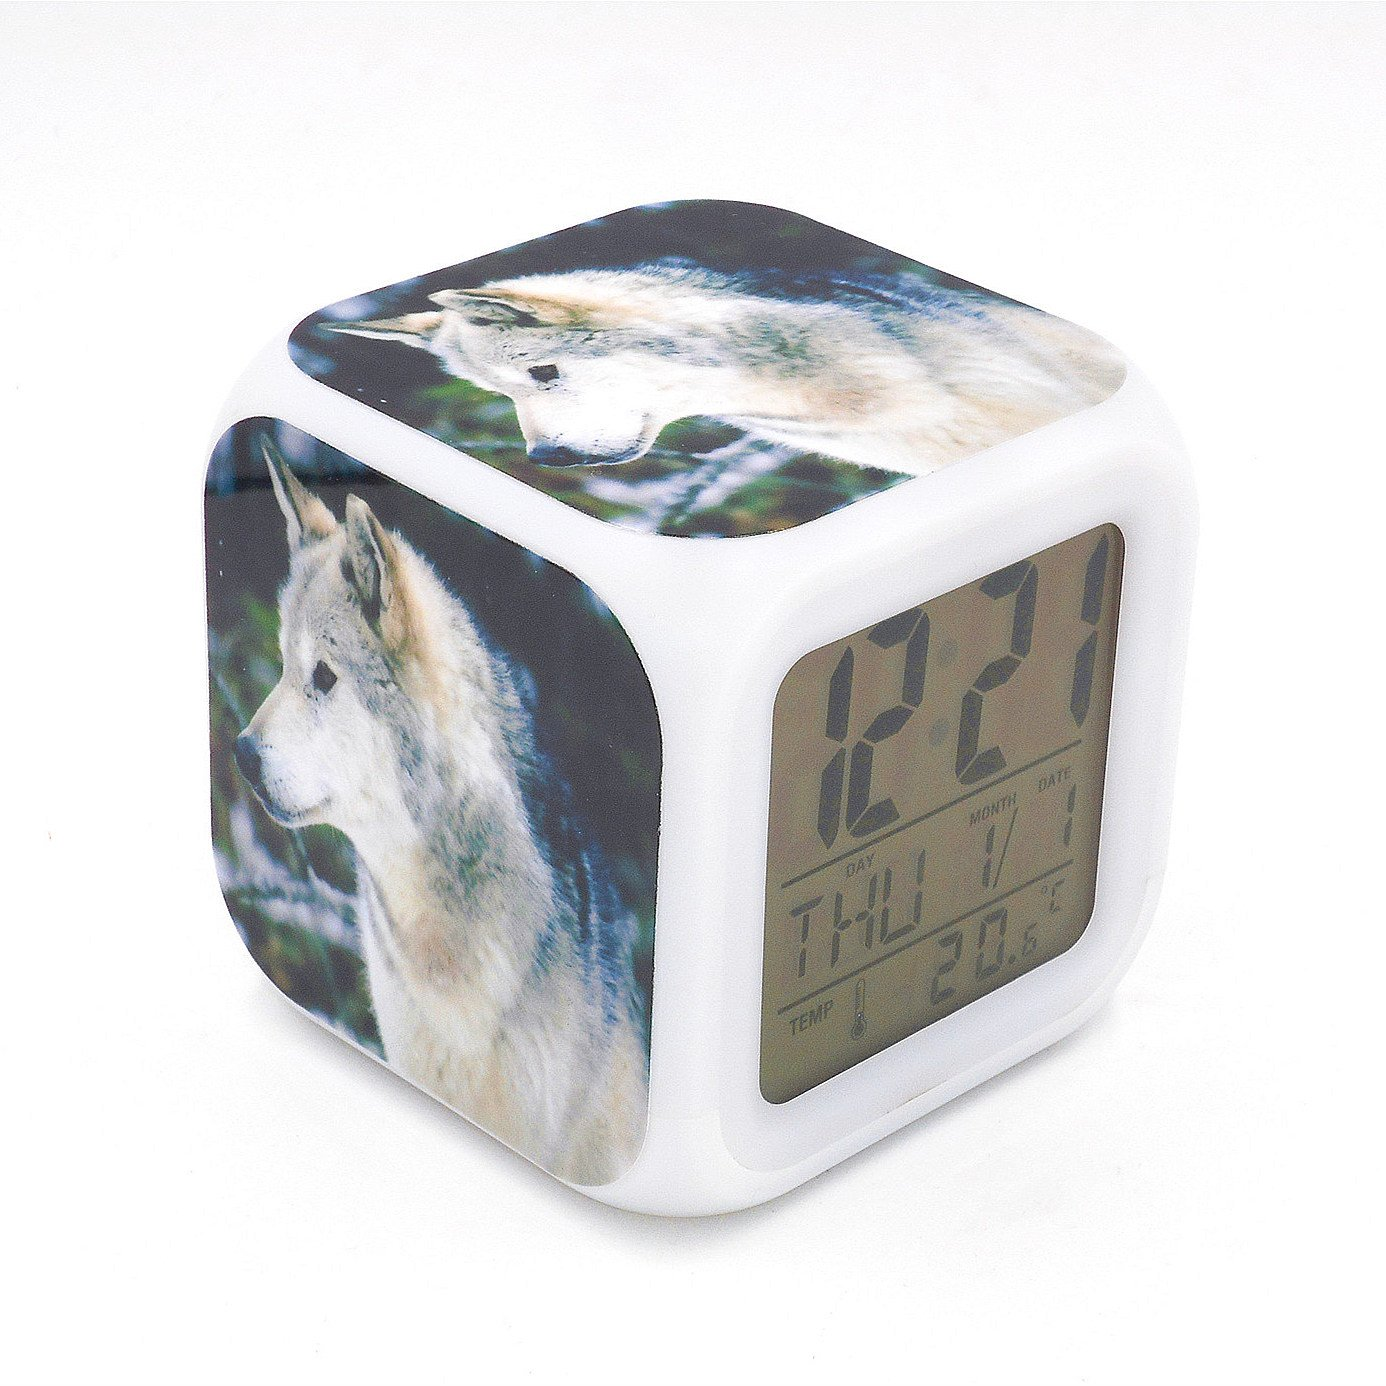 EGS New White Wolf Animal Digital Alarm Clock Desk Table Led Alarm Clock Creative Personalized Multifunctional Battery Alarm Clock Special Toy Gift for Unisex Kids Adults